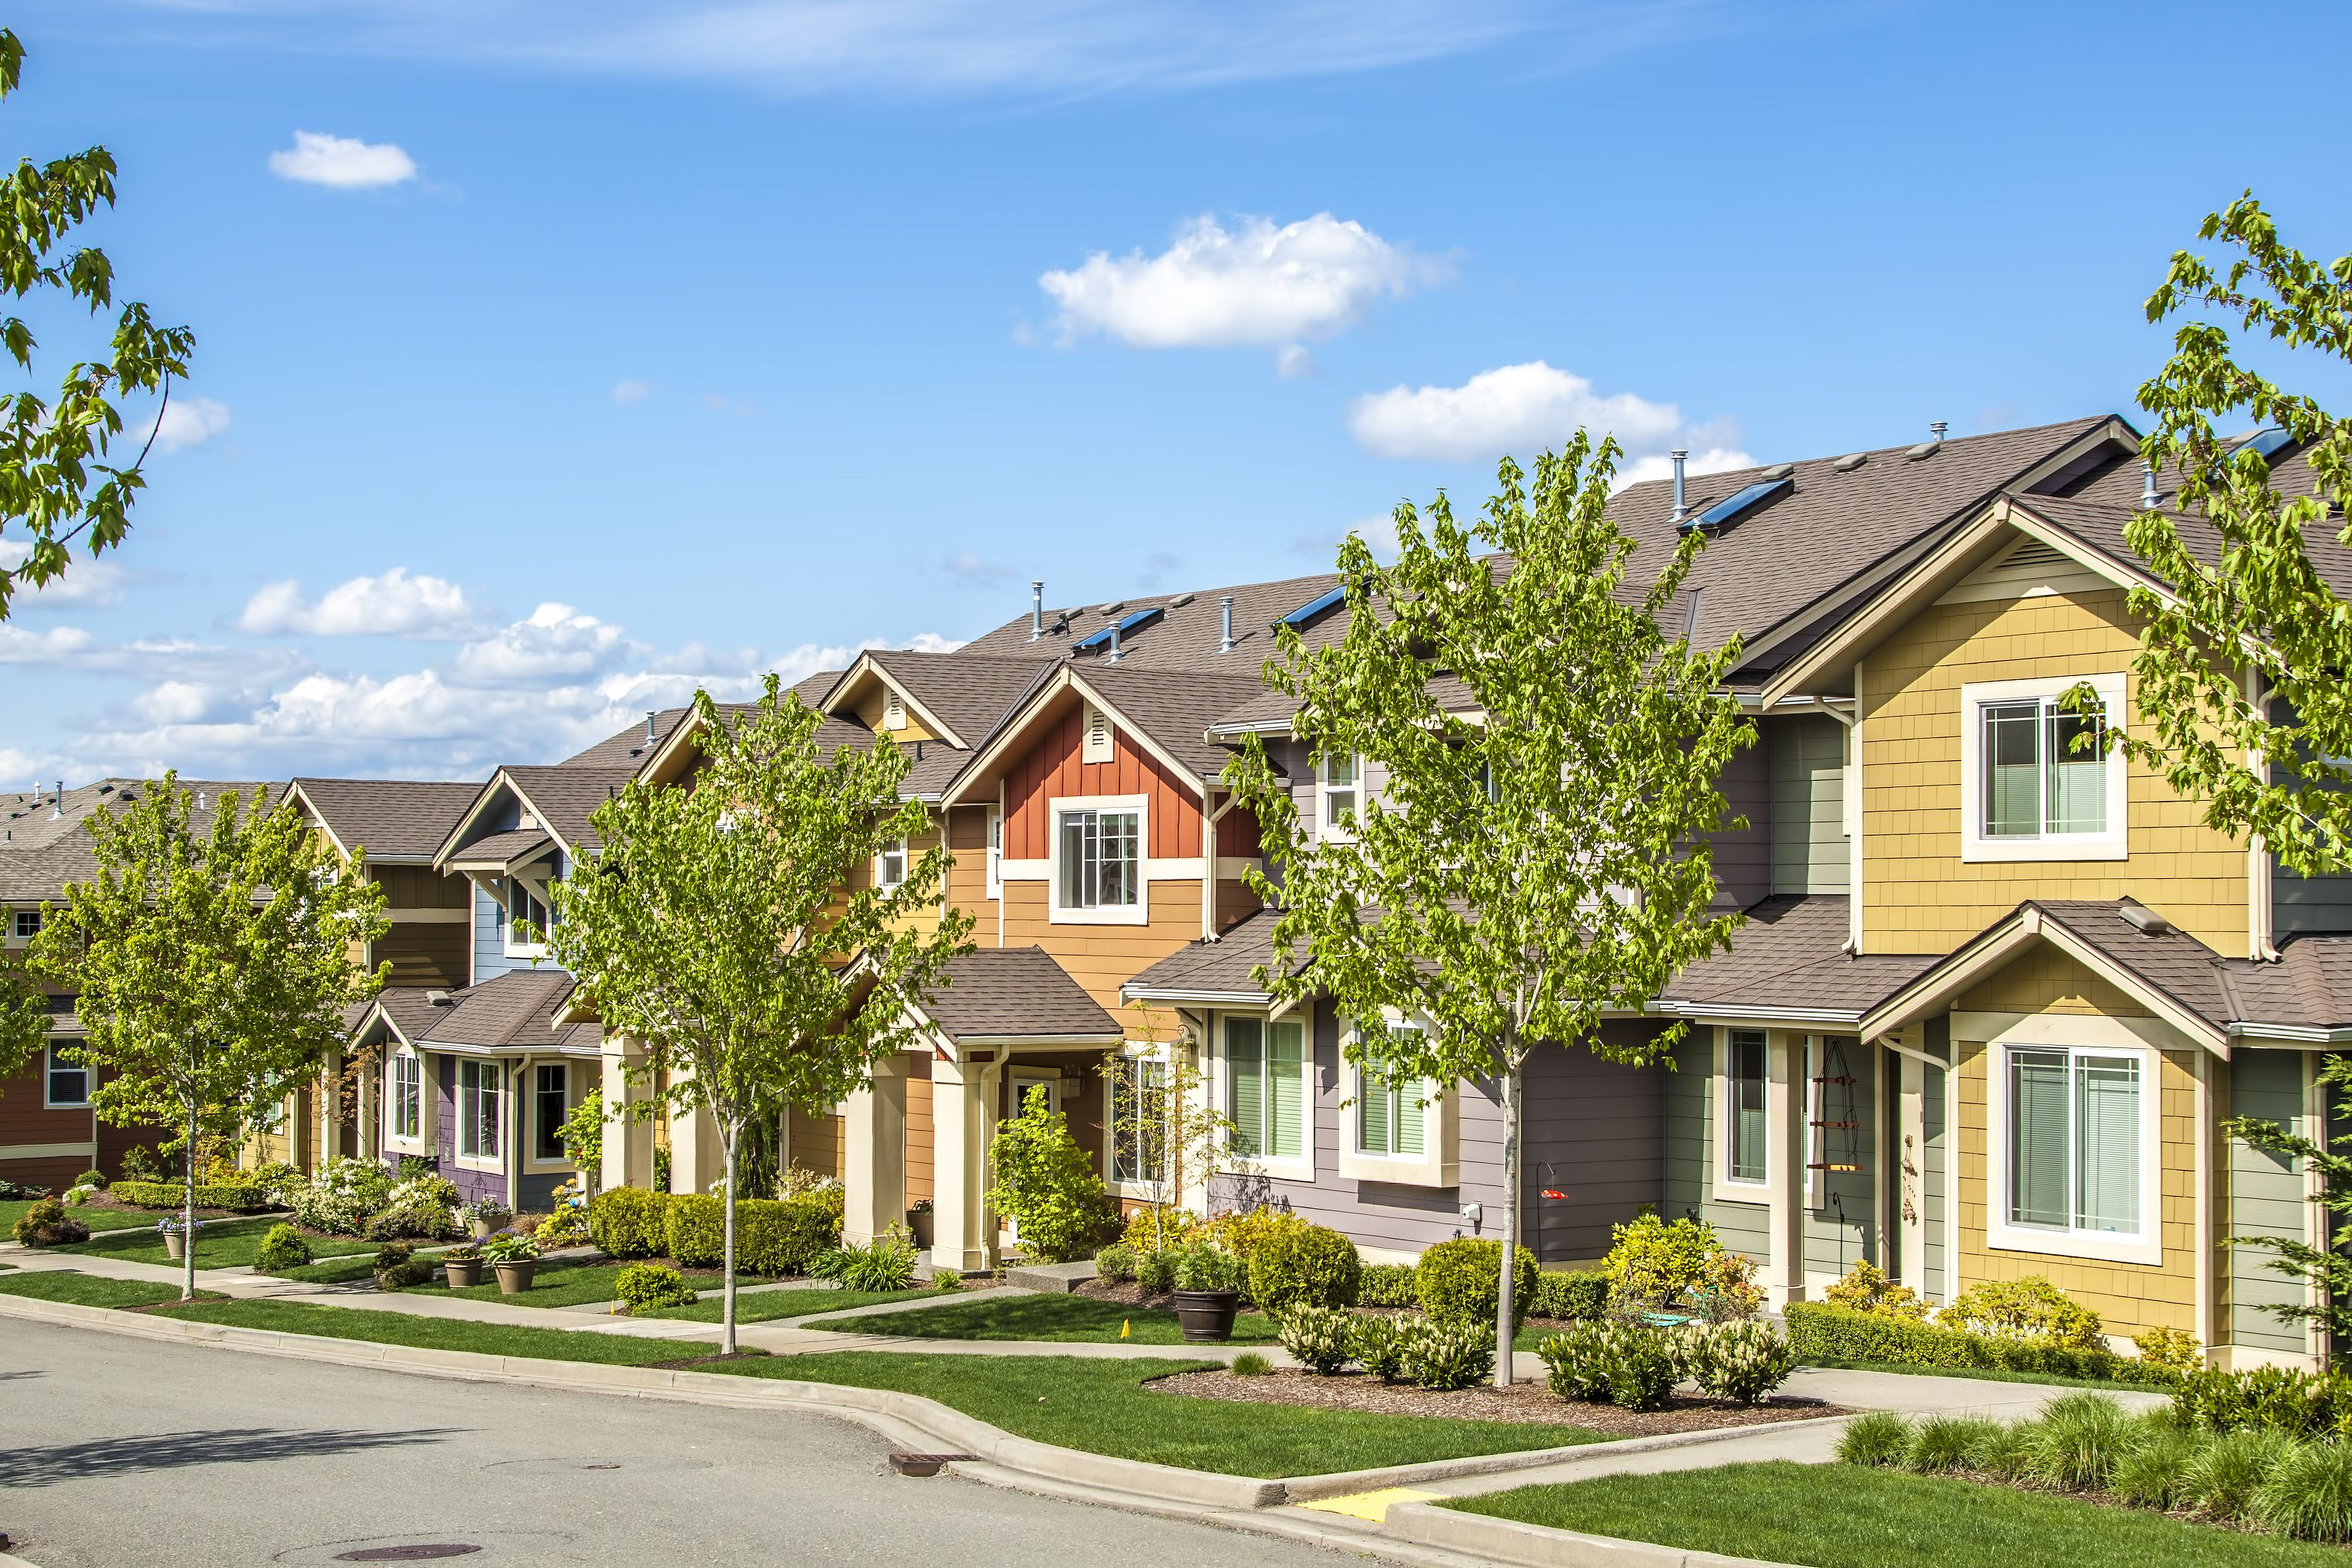 Renting Out A Condo Zillow Rental Manager Real Estate Real Estate Trends Real Estate Agent